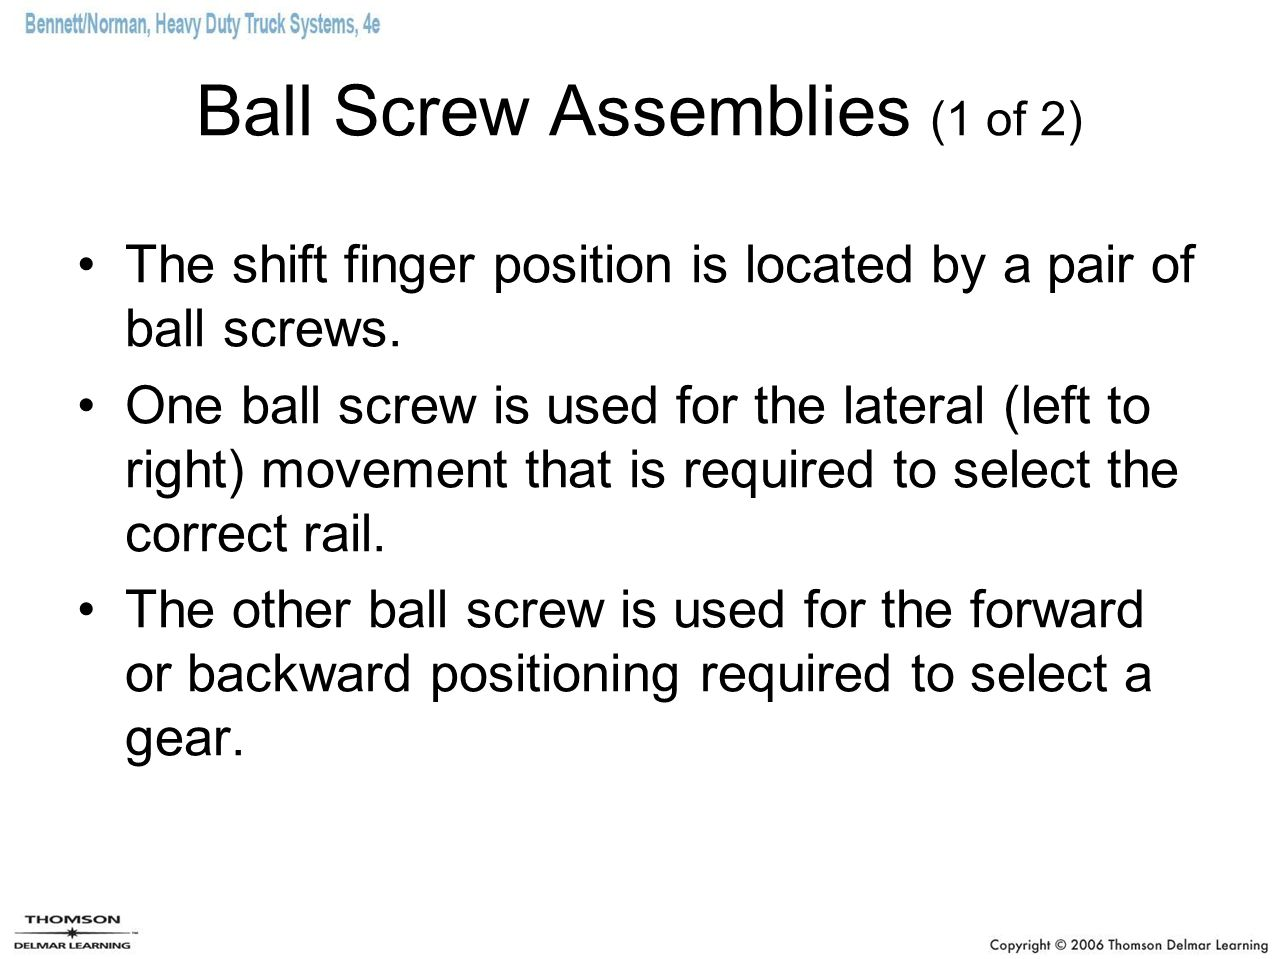 Ball Screw Assemblies (1 of 2) The shift finger position is located by a pair of ball screws. One ball screw is used for the lateral (left to right) m